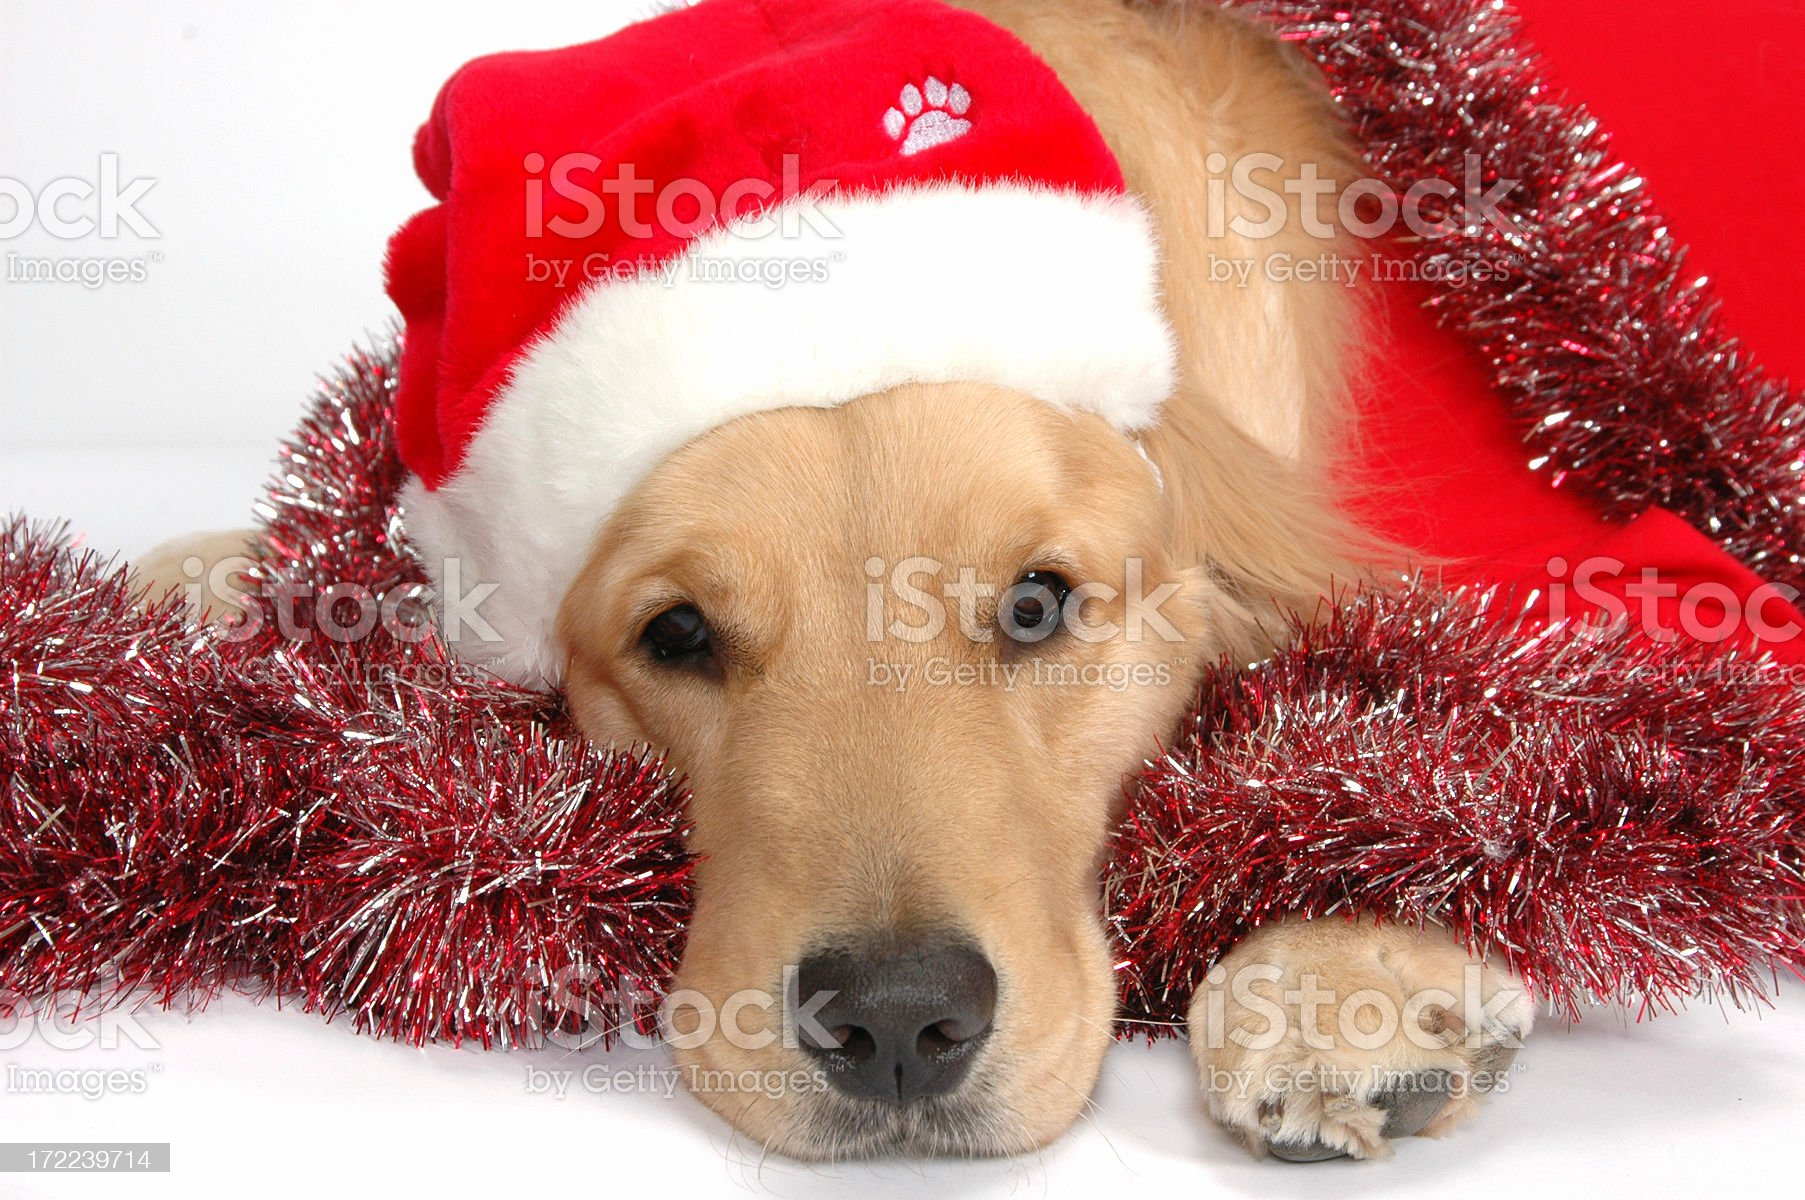 Ready for Christmas royalty-free stock photo